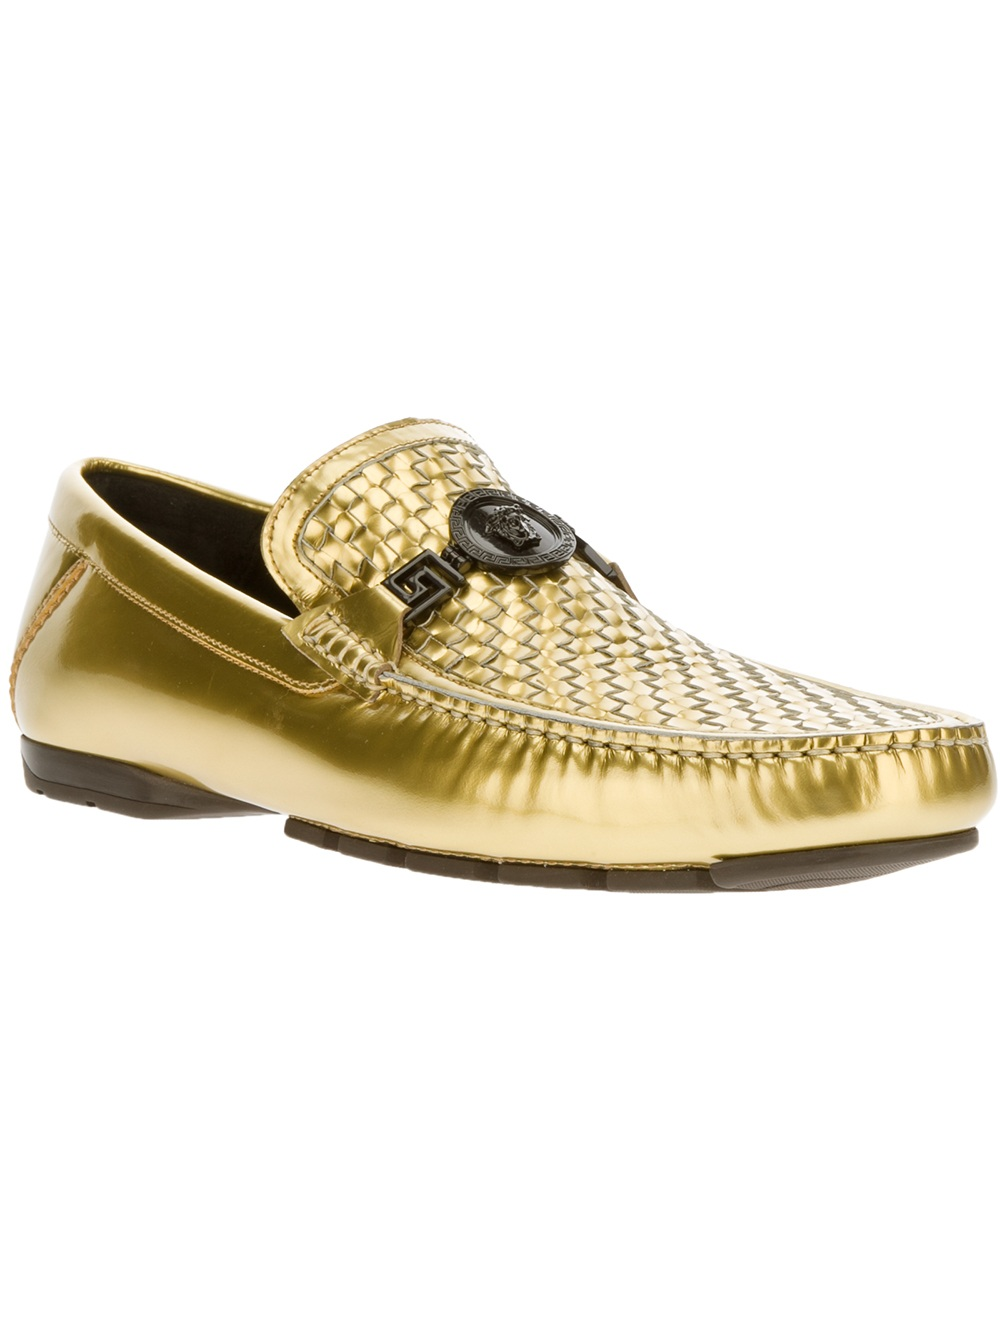 Versace Woven C... White Gucci Shoes For Men